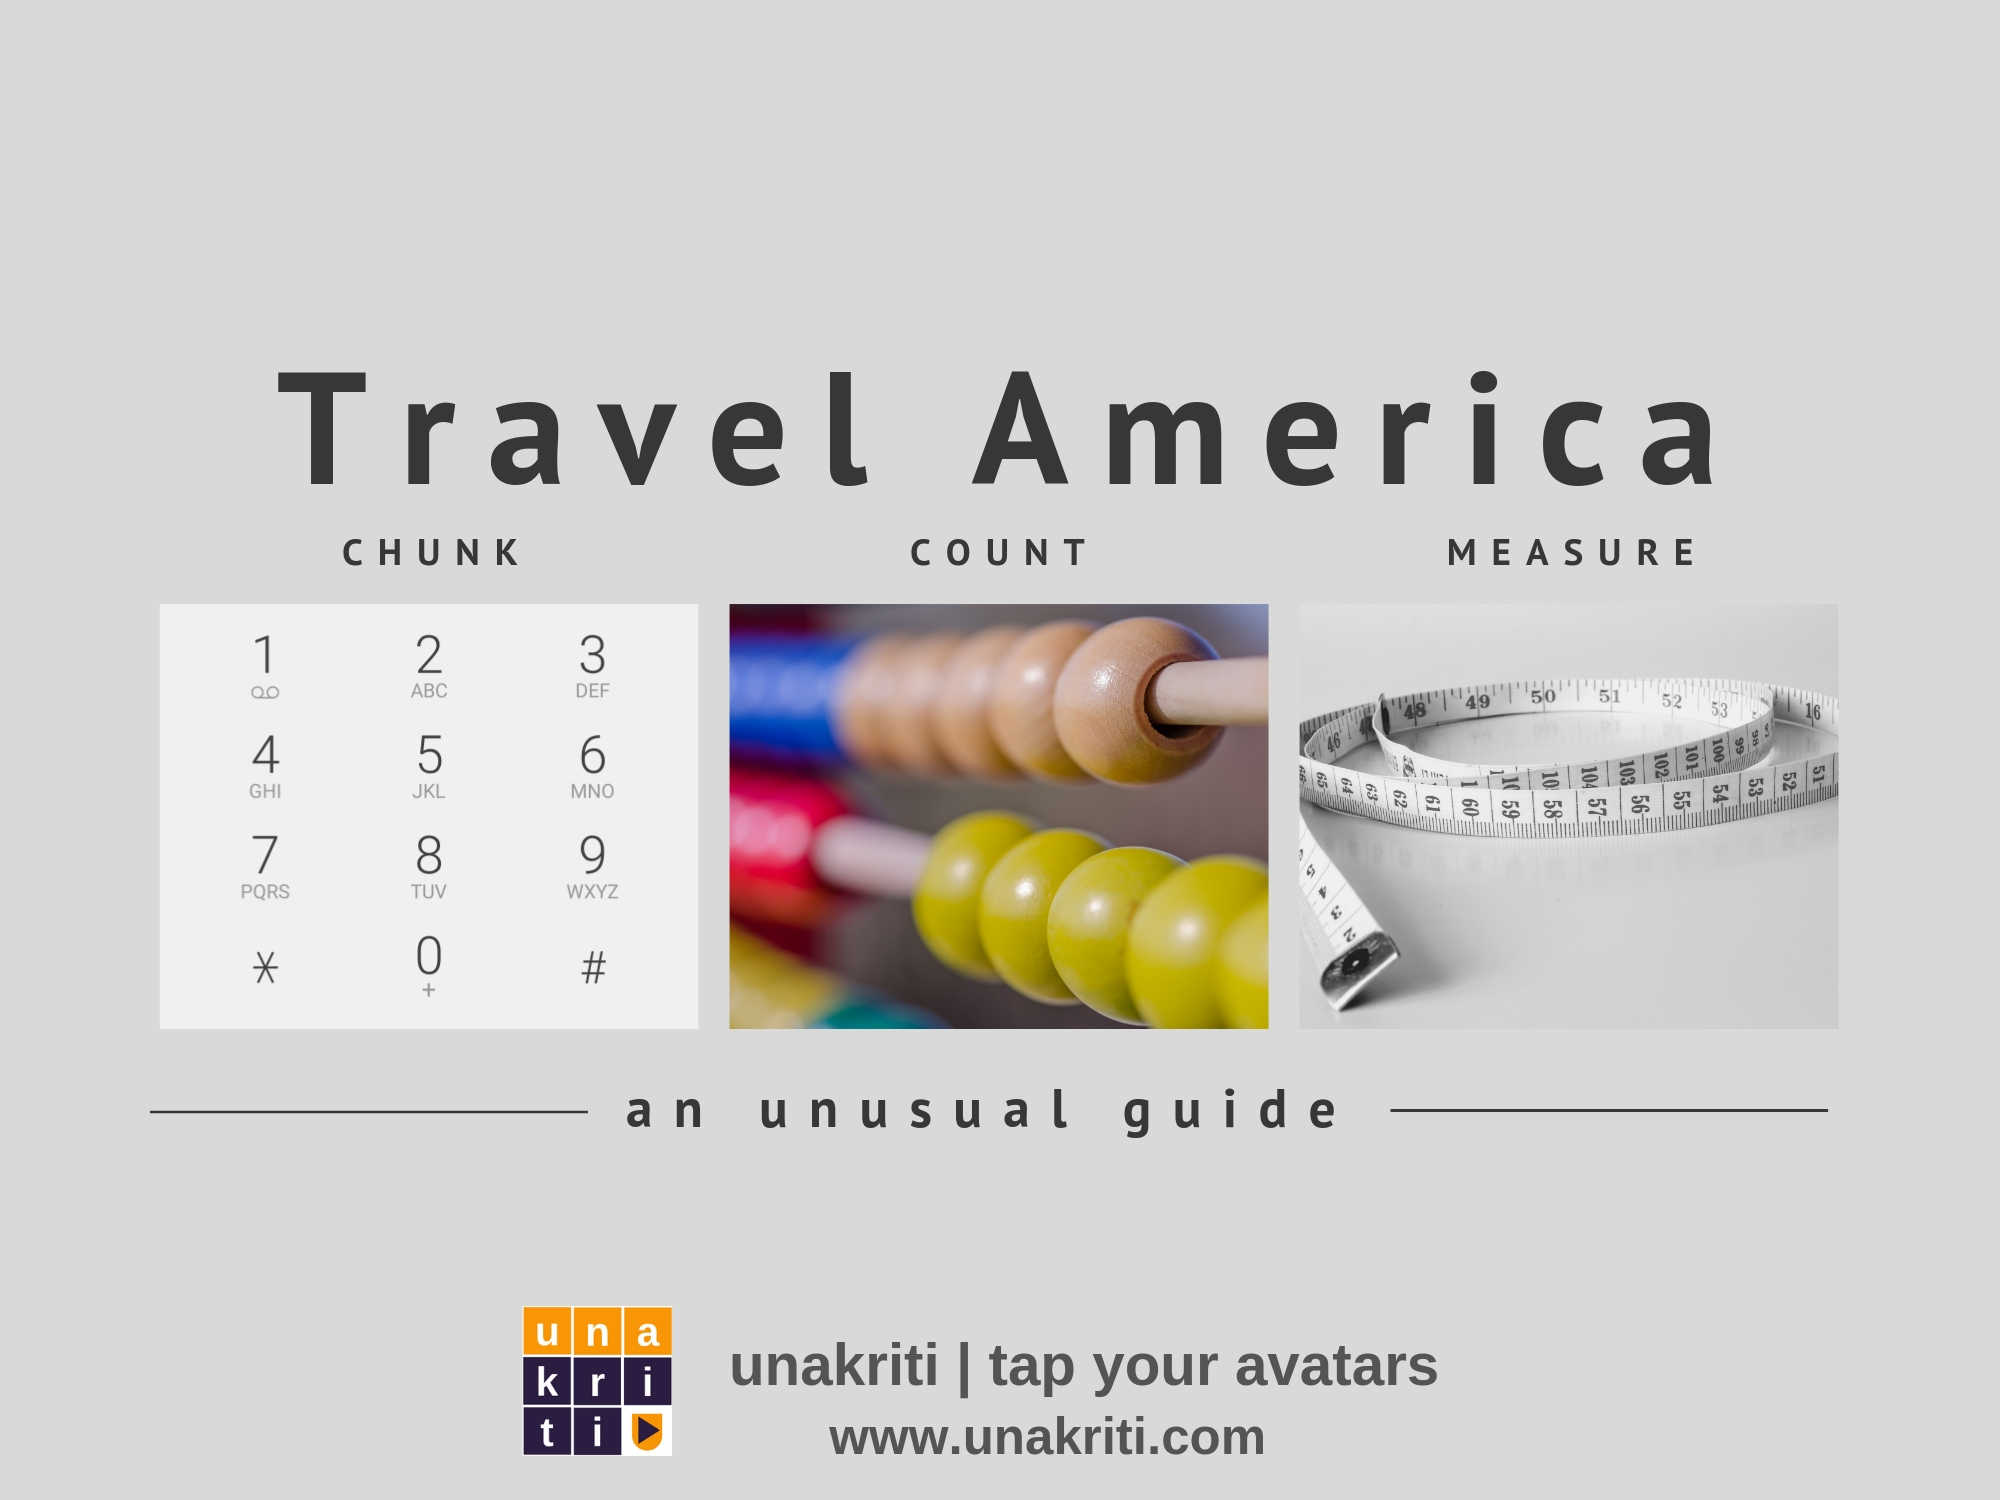 What are some unique tips for traveling to America?